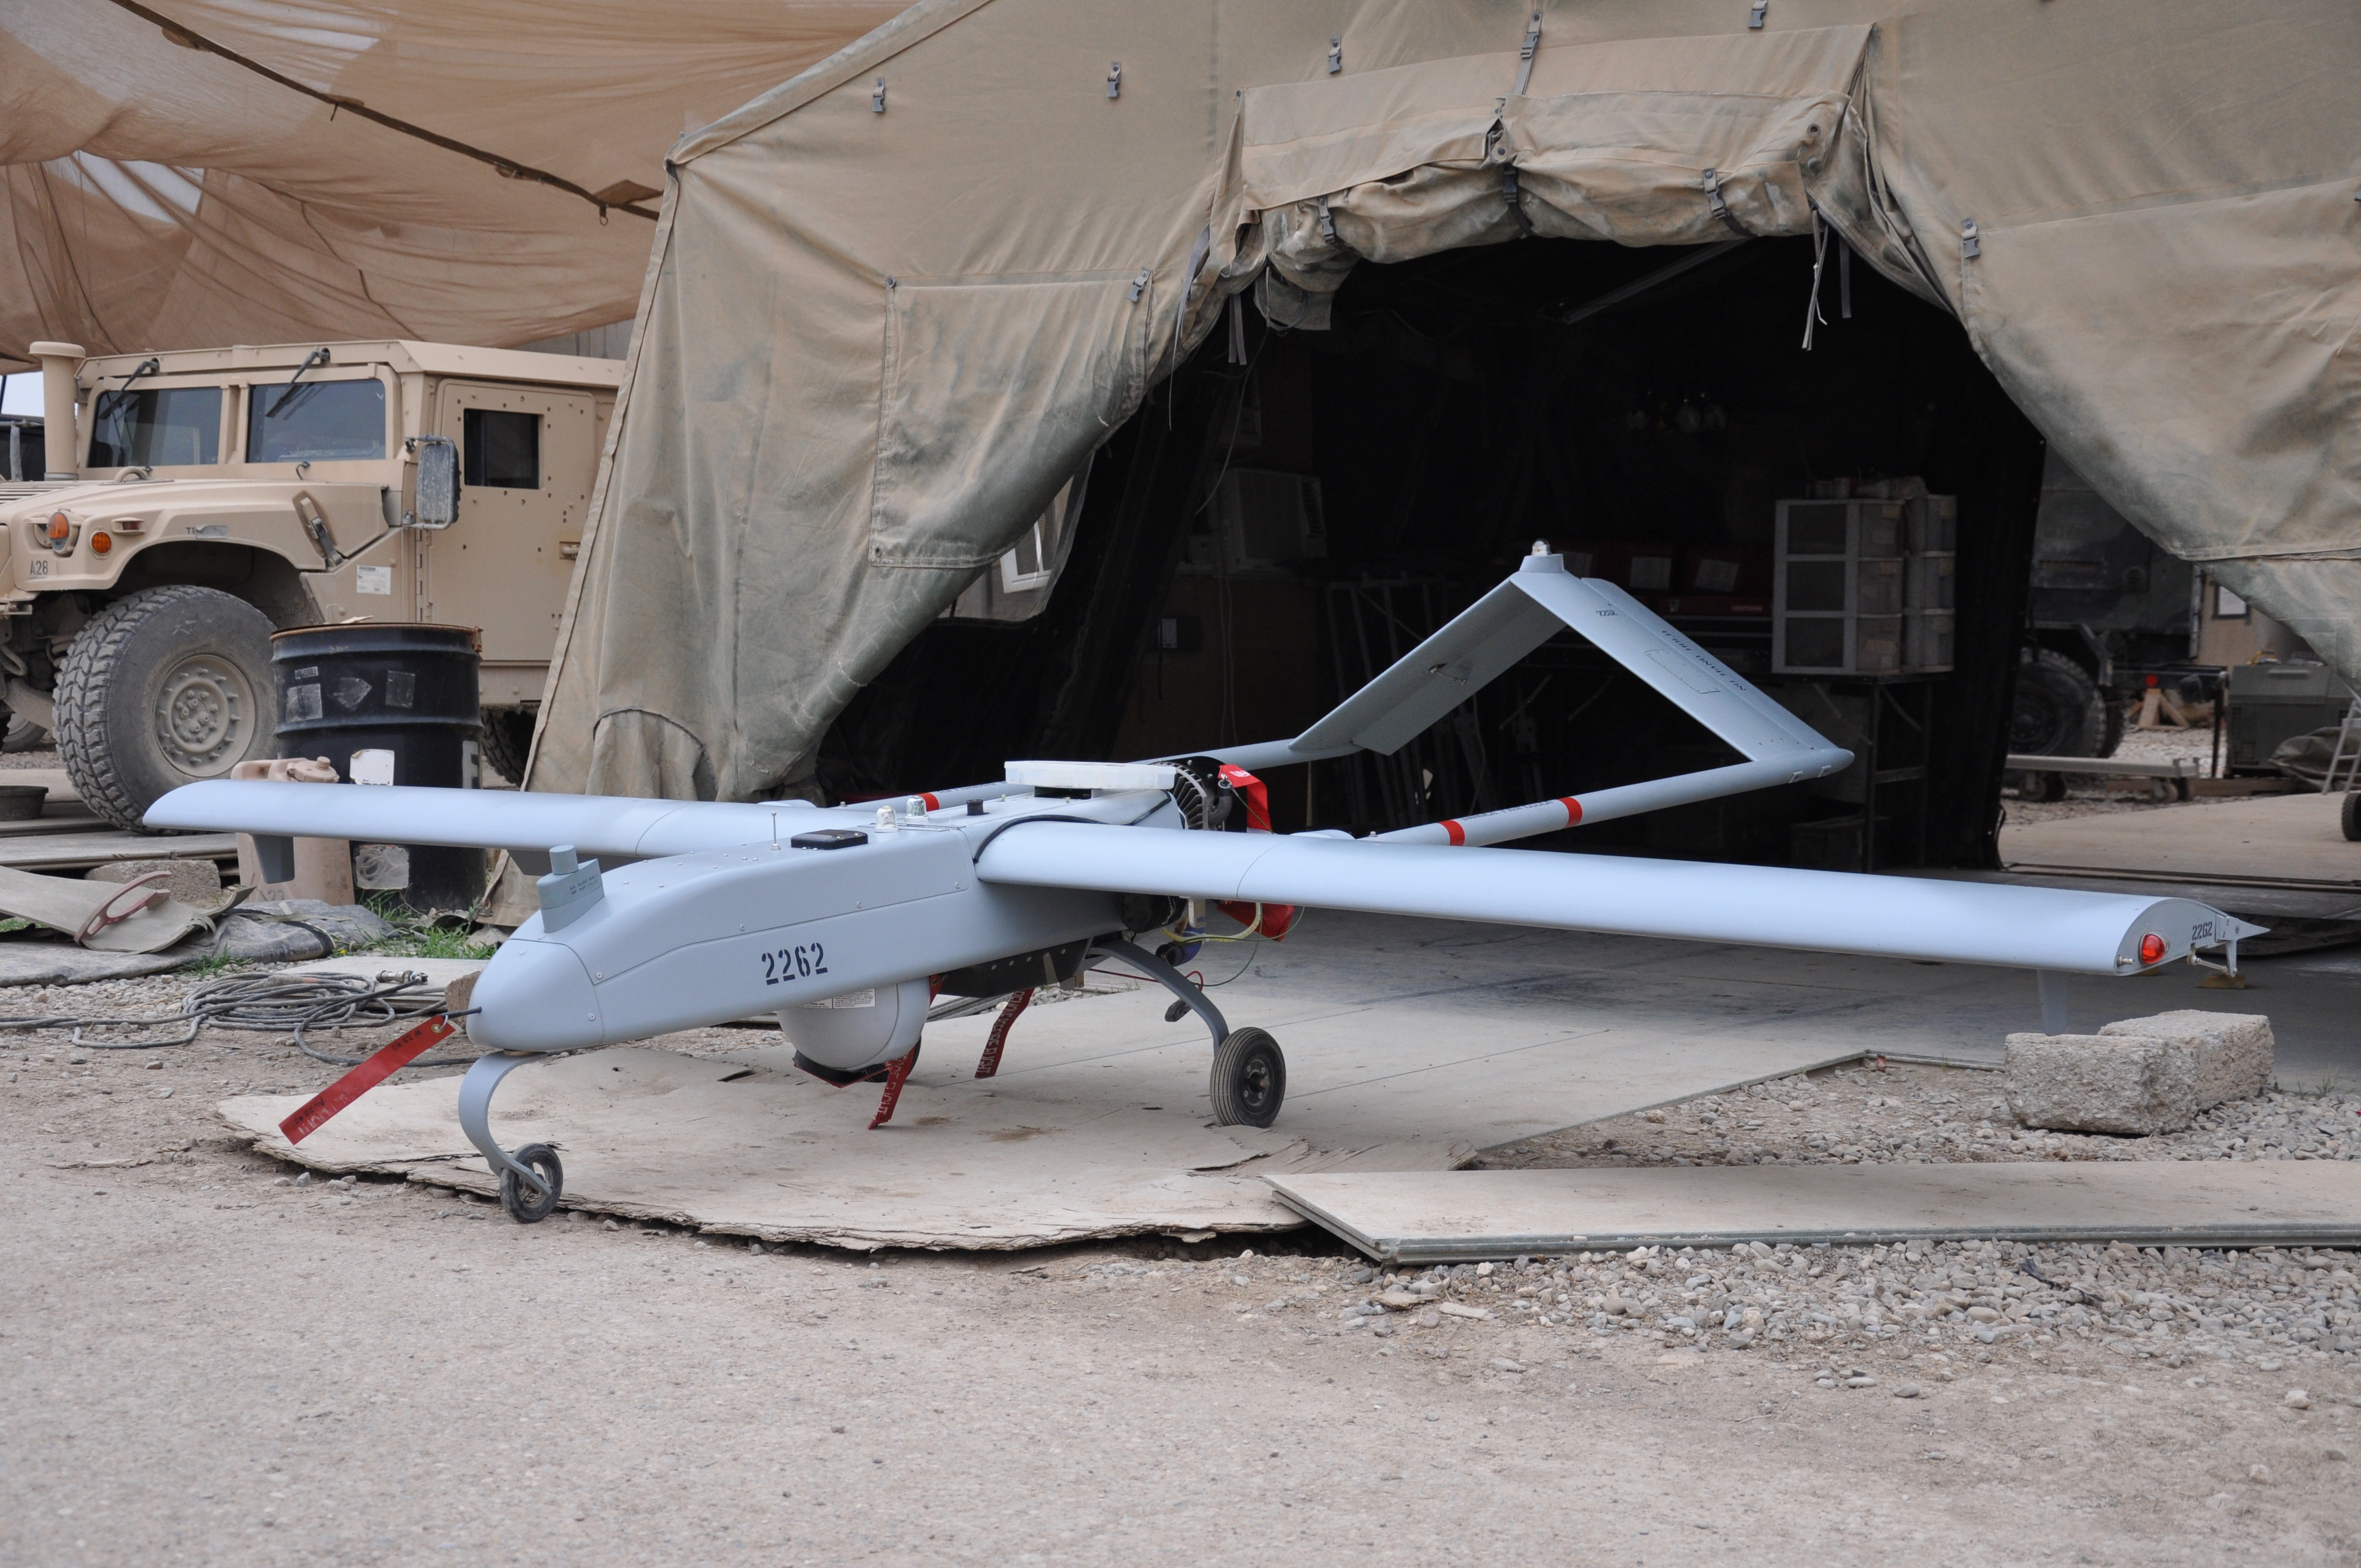 Drone collision in Afghanistan sparks debate on U.S. availability